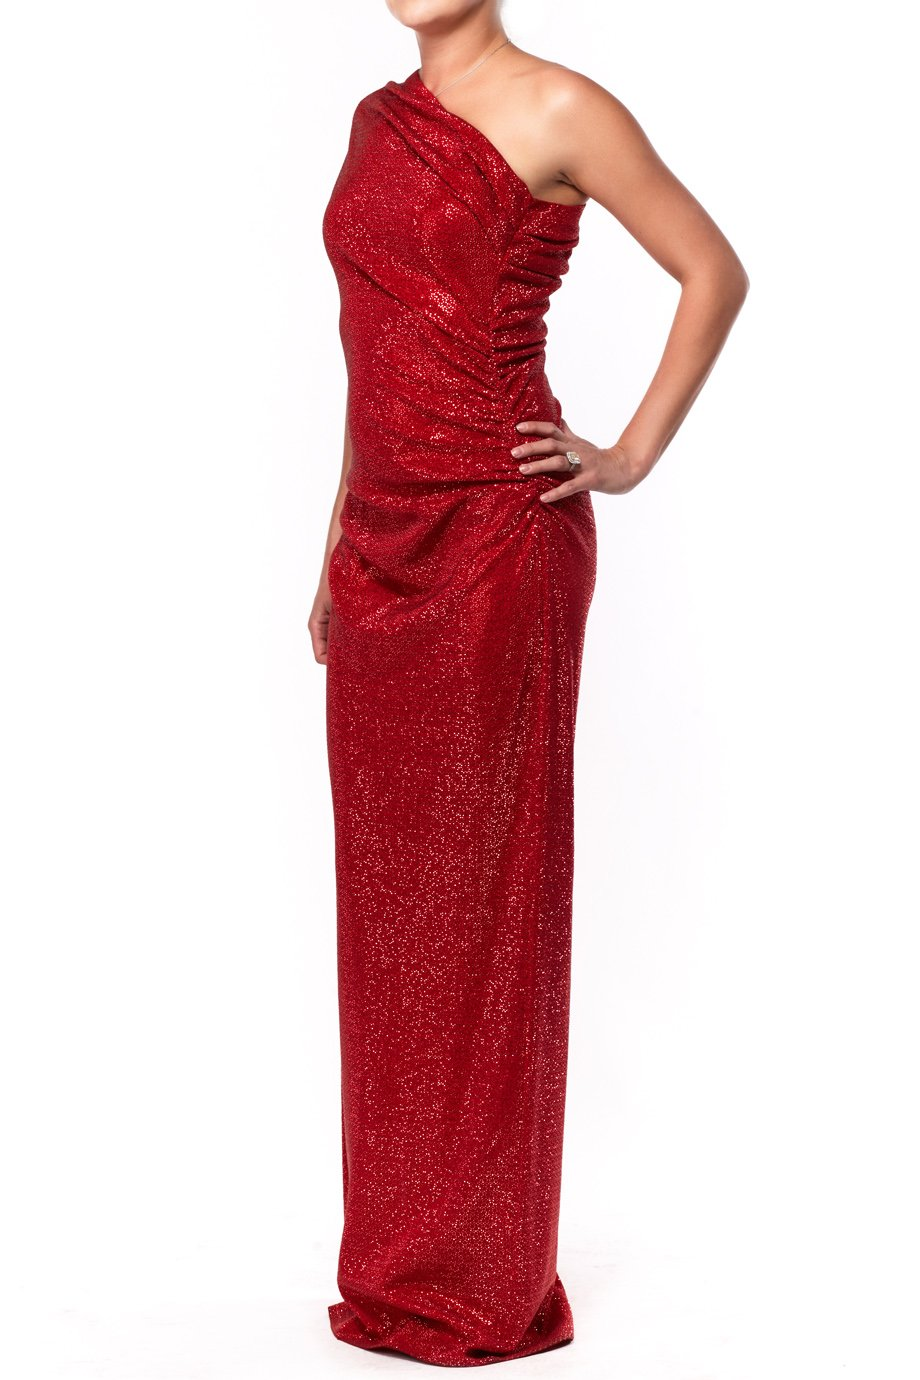 St John Red One Shoulder Shiny Evening Gown